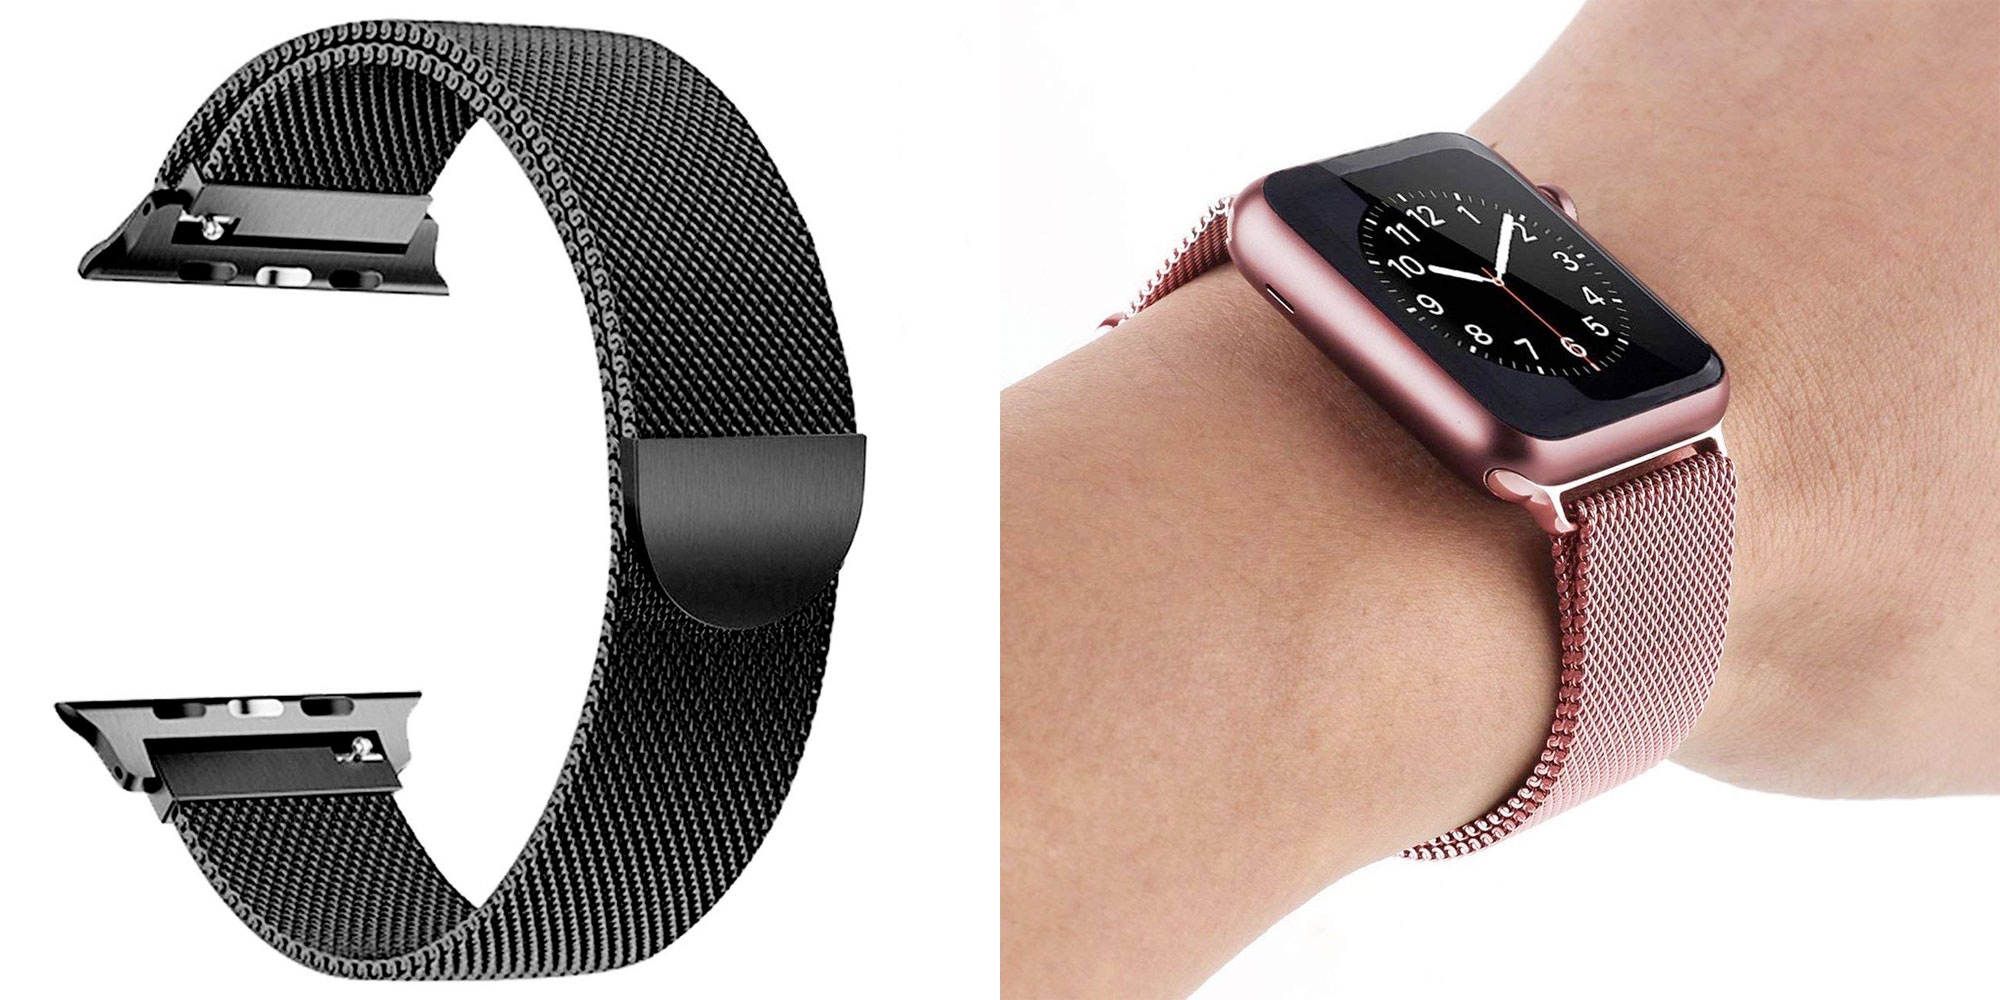 Upgrade your Apple Watch's look w/ a Milanese band in multiple colors from $5.50 Prime shipped